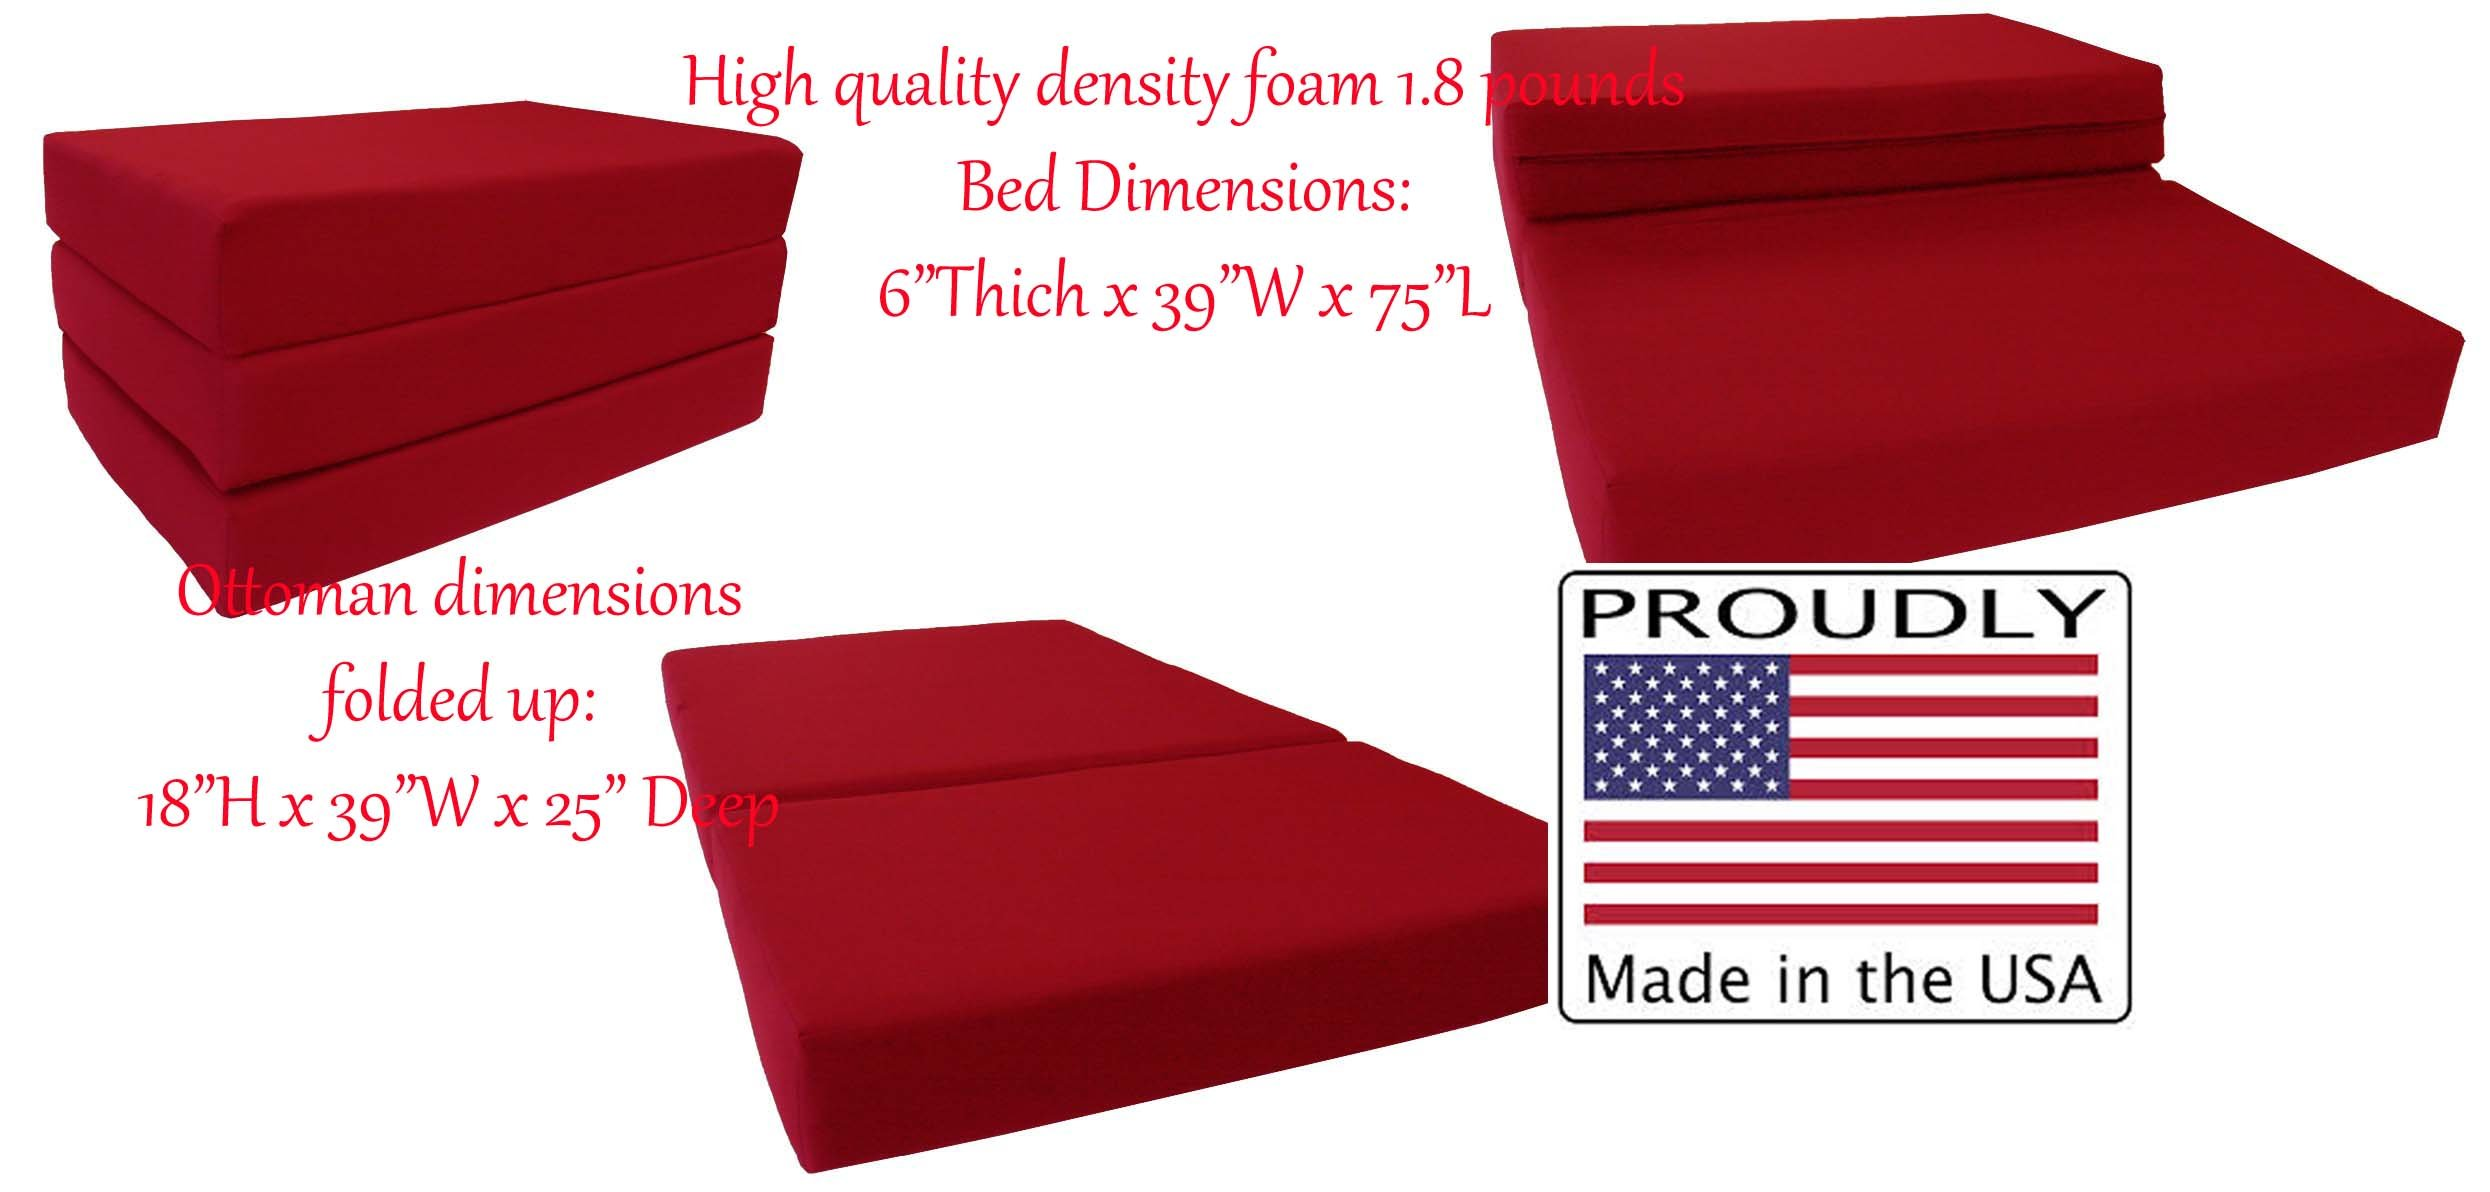 Red Solid Twin Size Shikibuton Trifold Foam Beds 6 Thick x 39 W x 75 inches Long, 1.8 lbs high density resilient white foam, Floor Foam Folding Mats.